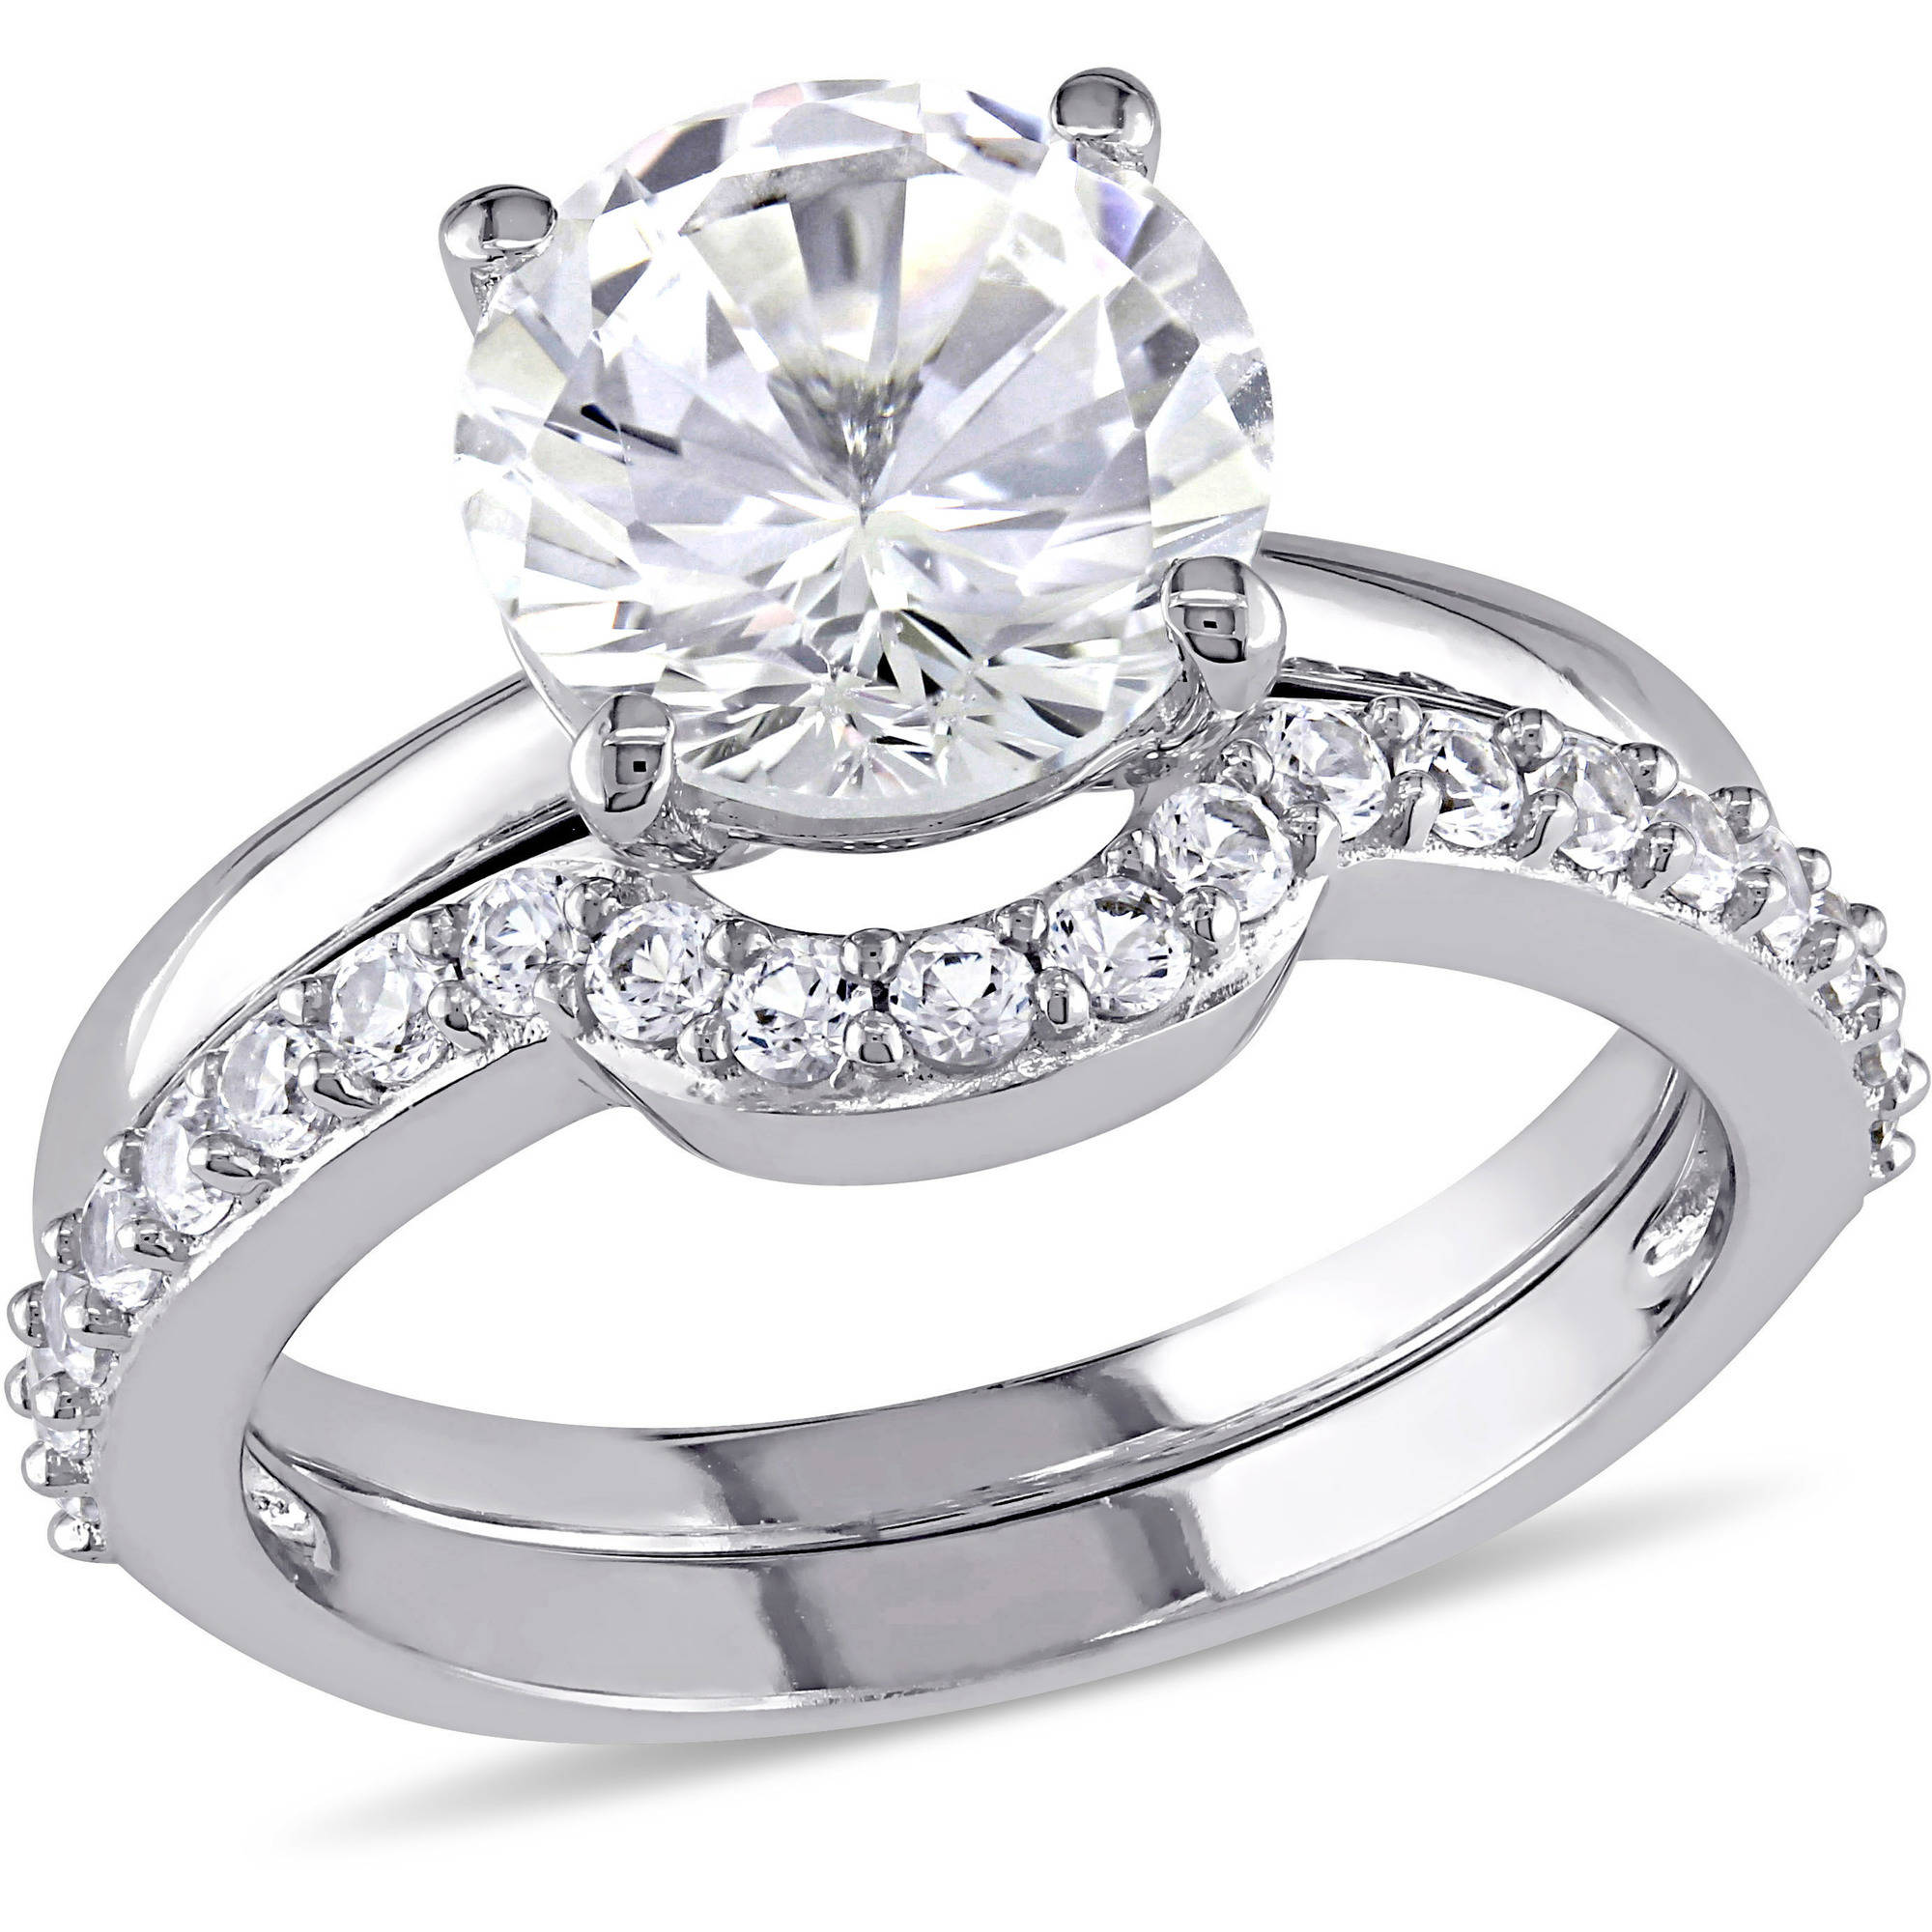 Miabella 2-4 5 Carat T.G.W. Created White Sapphire 10kt White Gold Bridal Set by Miabella